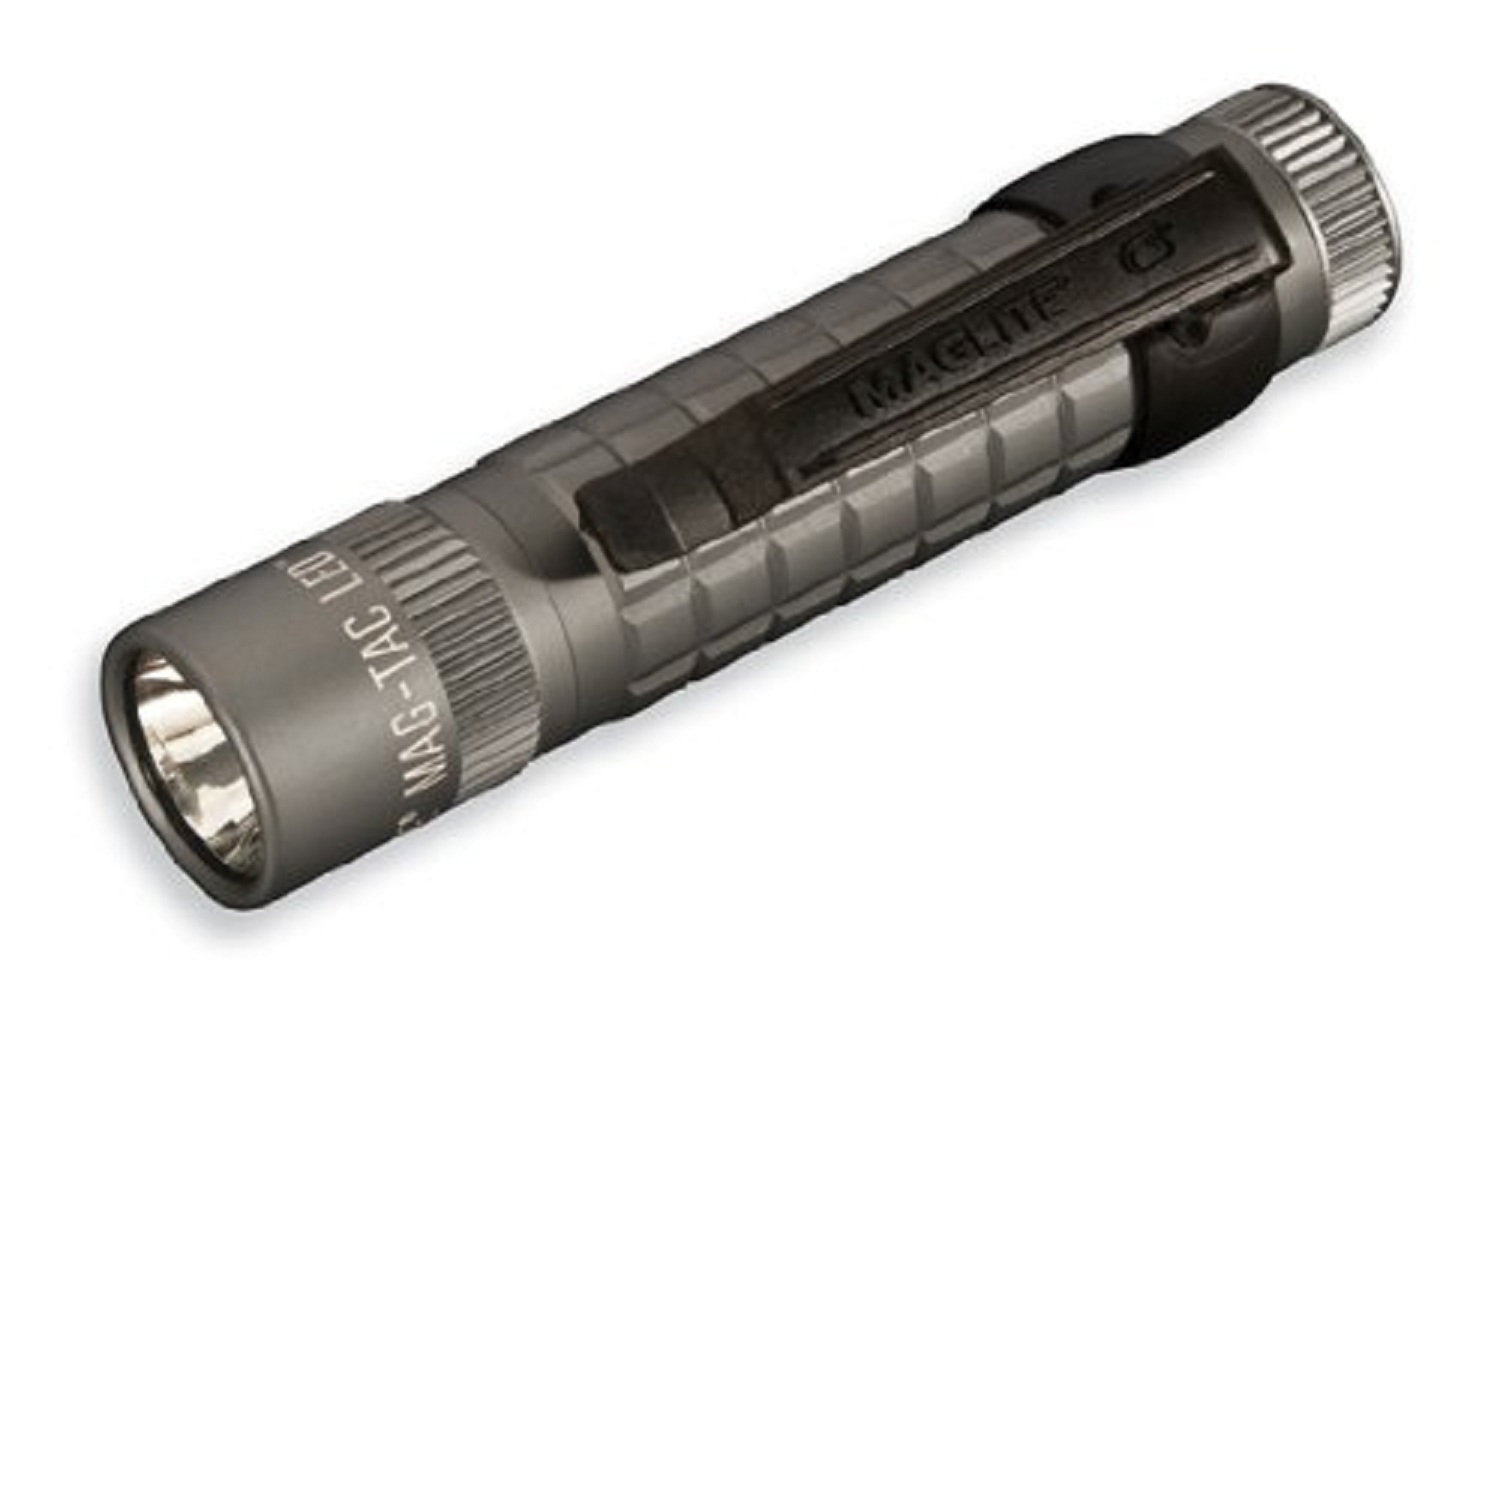 Mag-Tac 2-Cell LED Flashlight with Non Scalloped Head, Urban